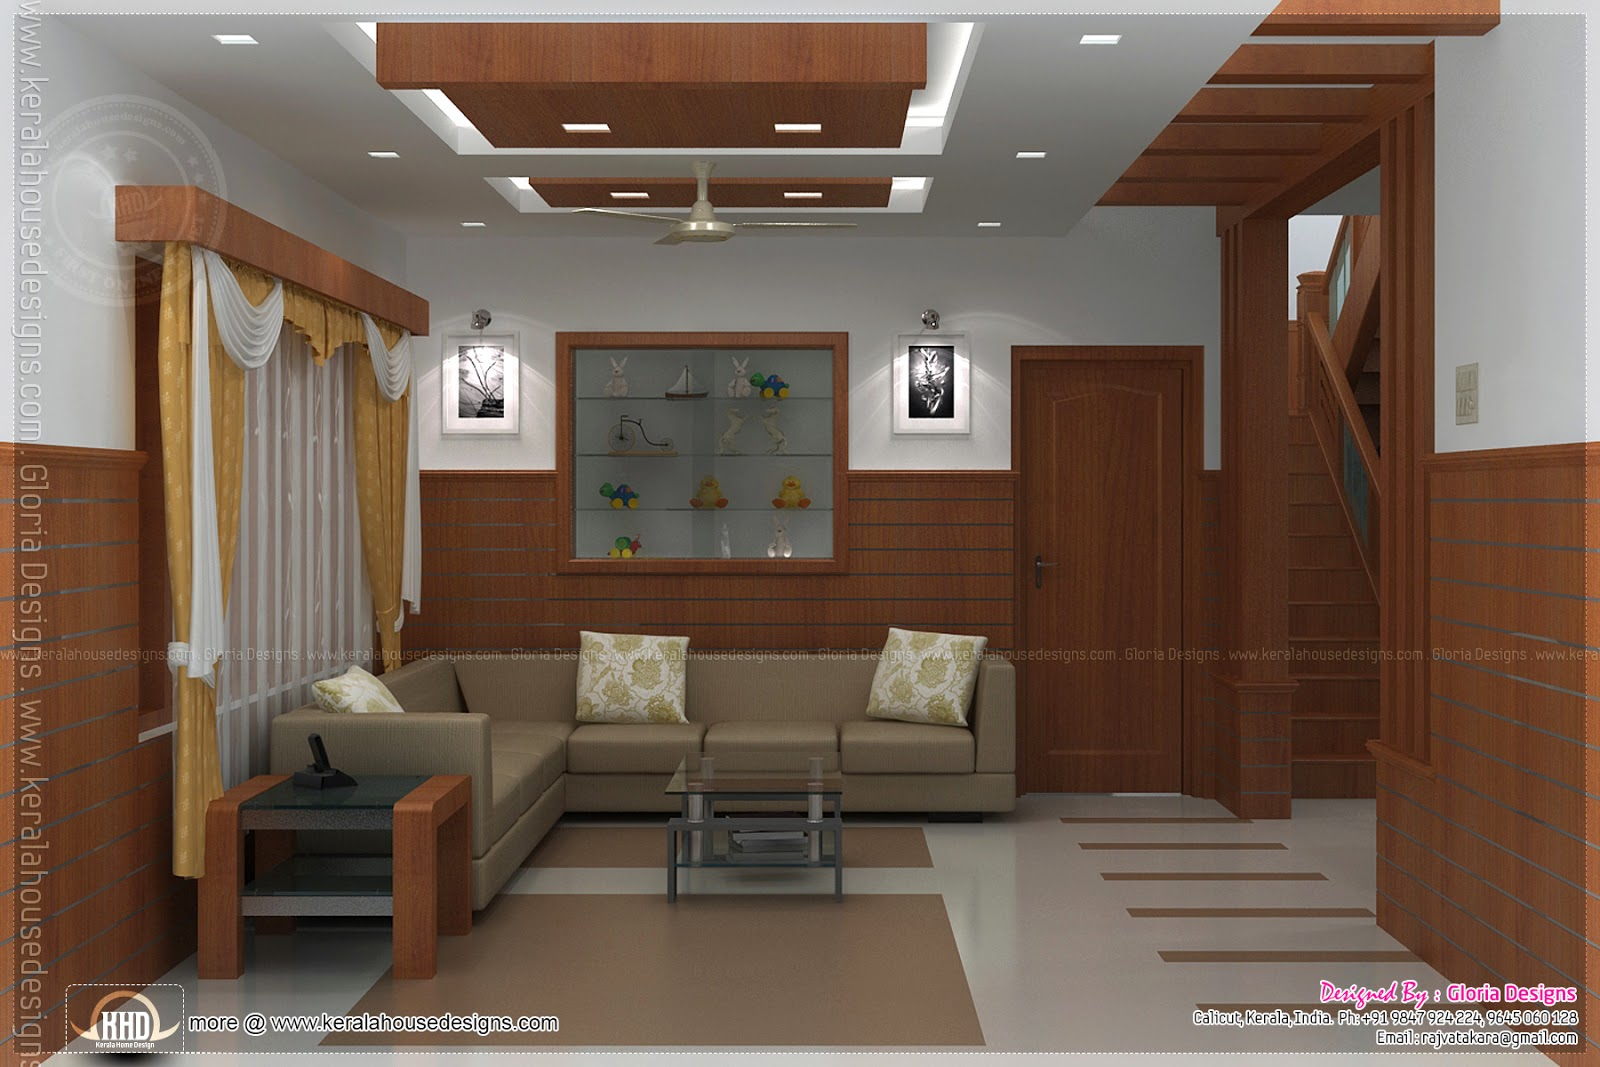 Home interior designs by gloria designs calicut kerala for Home interior design photo gallery